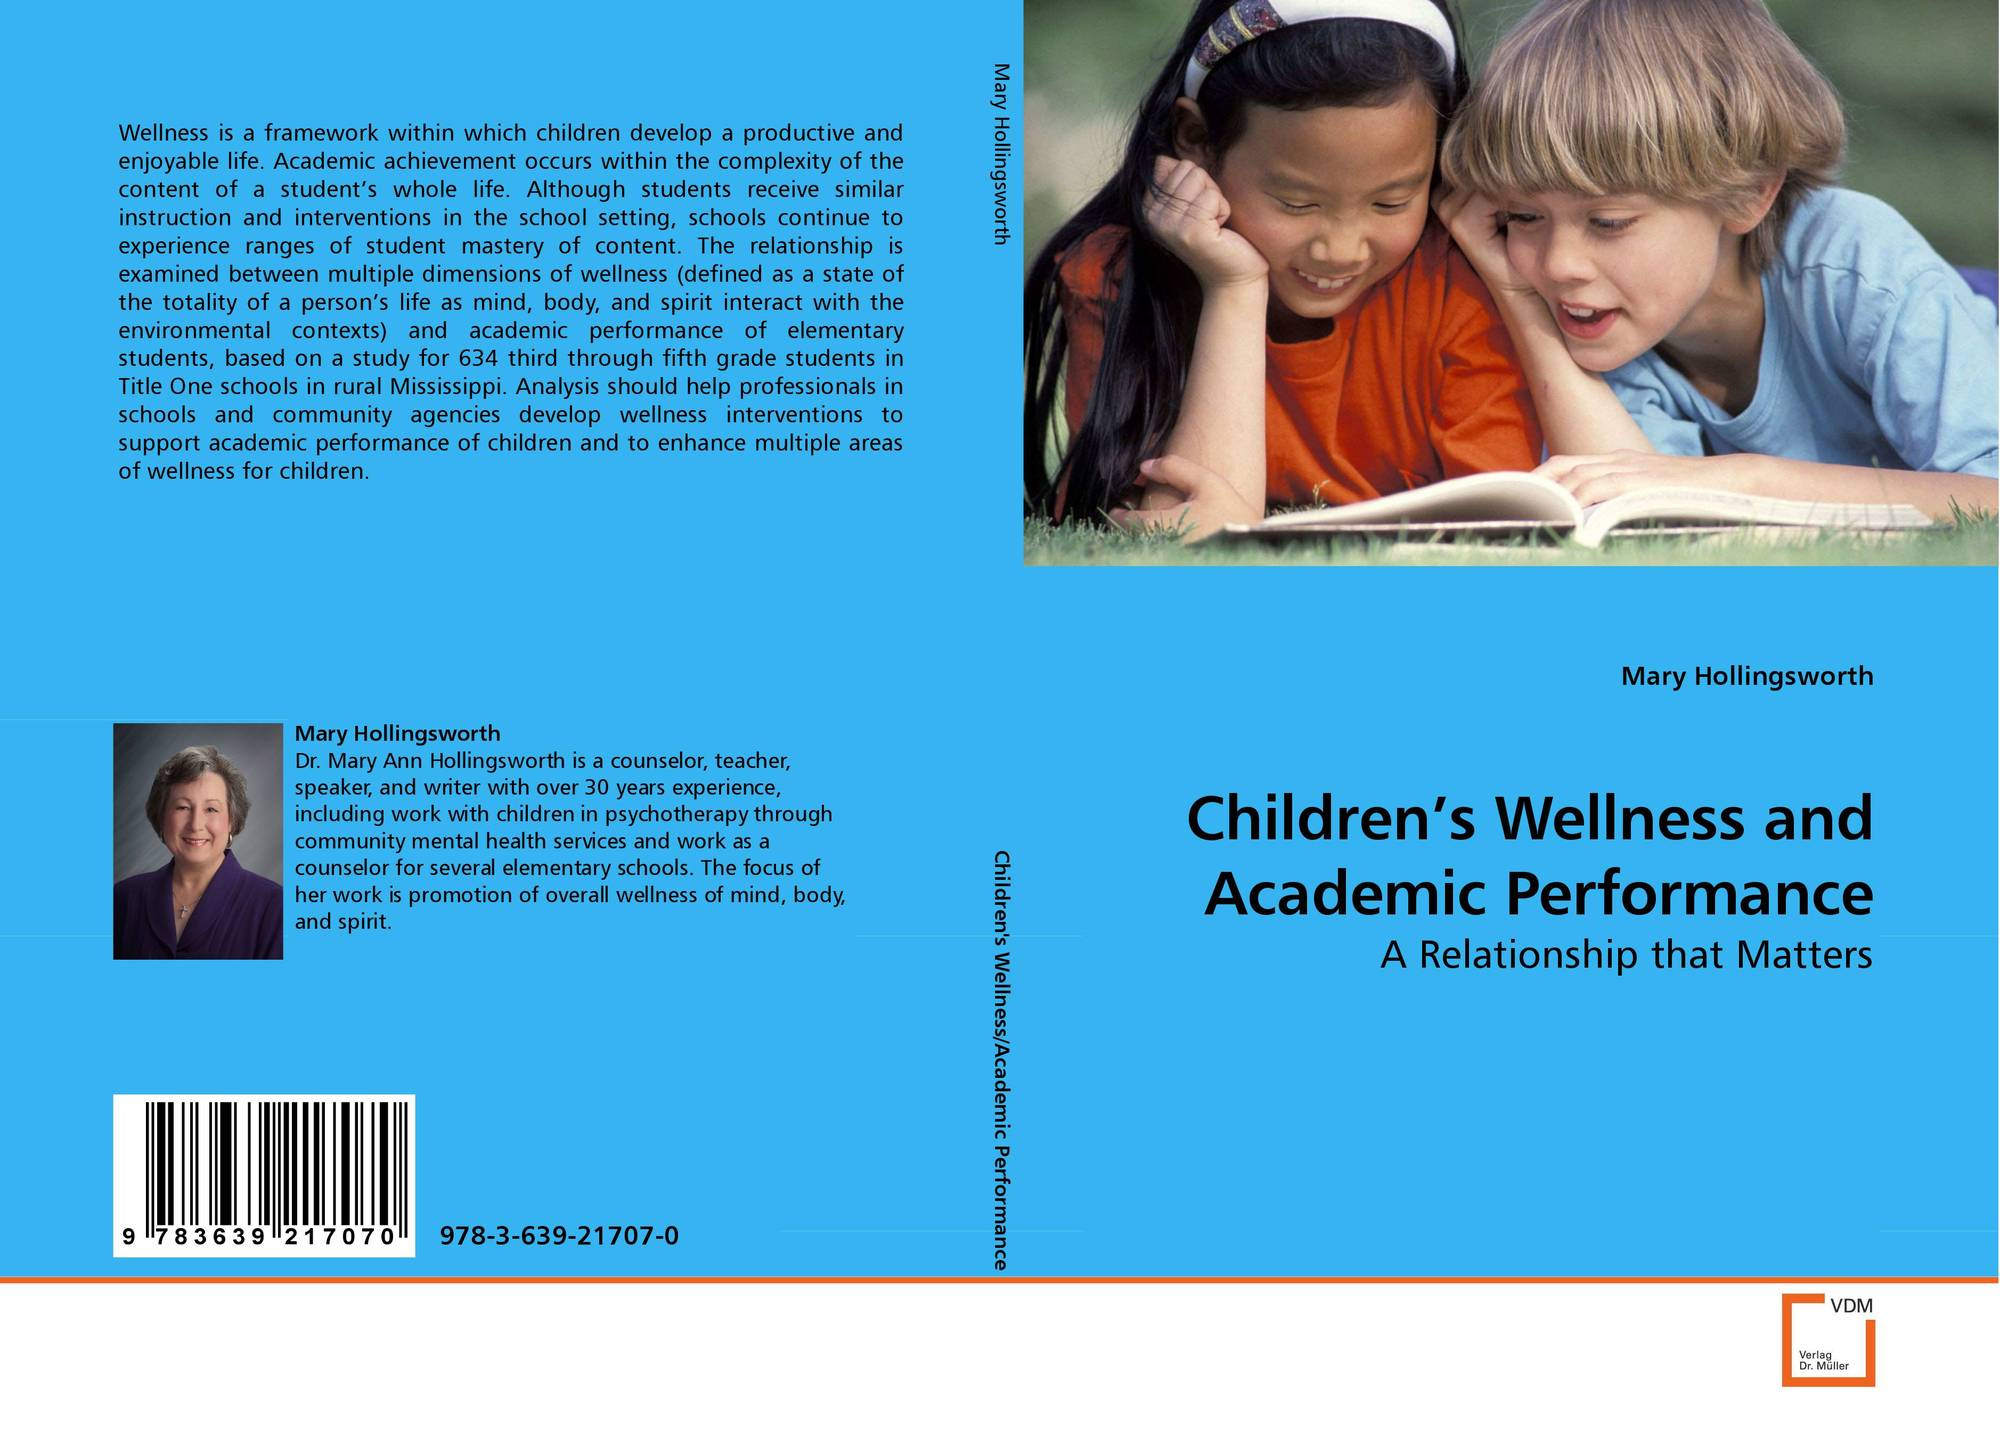 academic performance of ofw school children The association between school-based physical activity, including physical education  academic performance children and adolescents engage in different types.